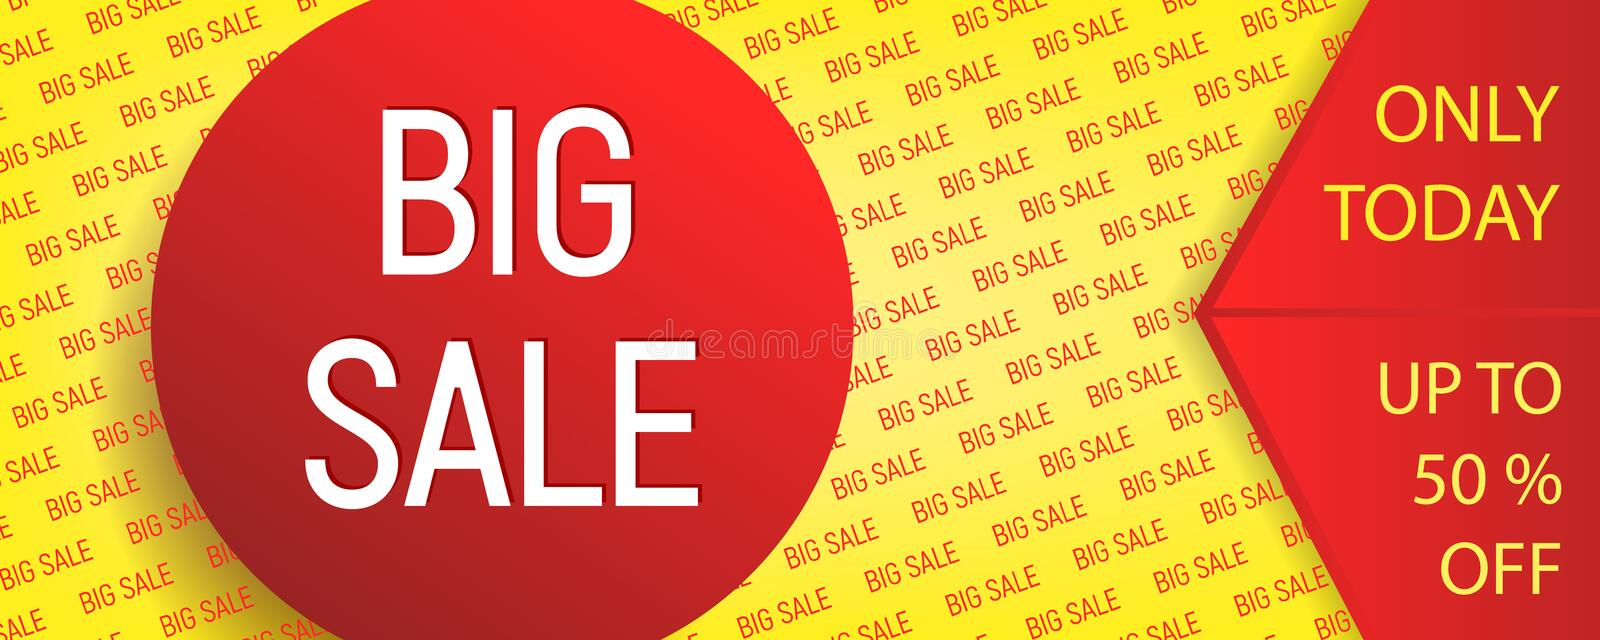 Big sale banner. Poster in yellow and red colors with text for sale promotion vector illustration